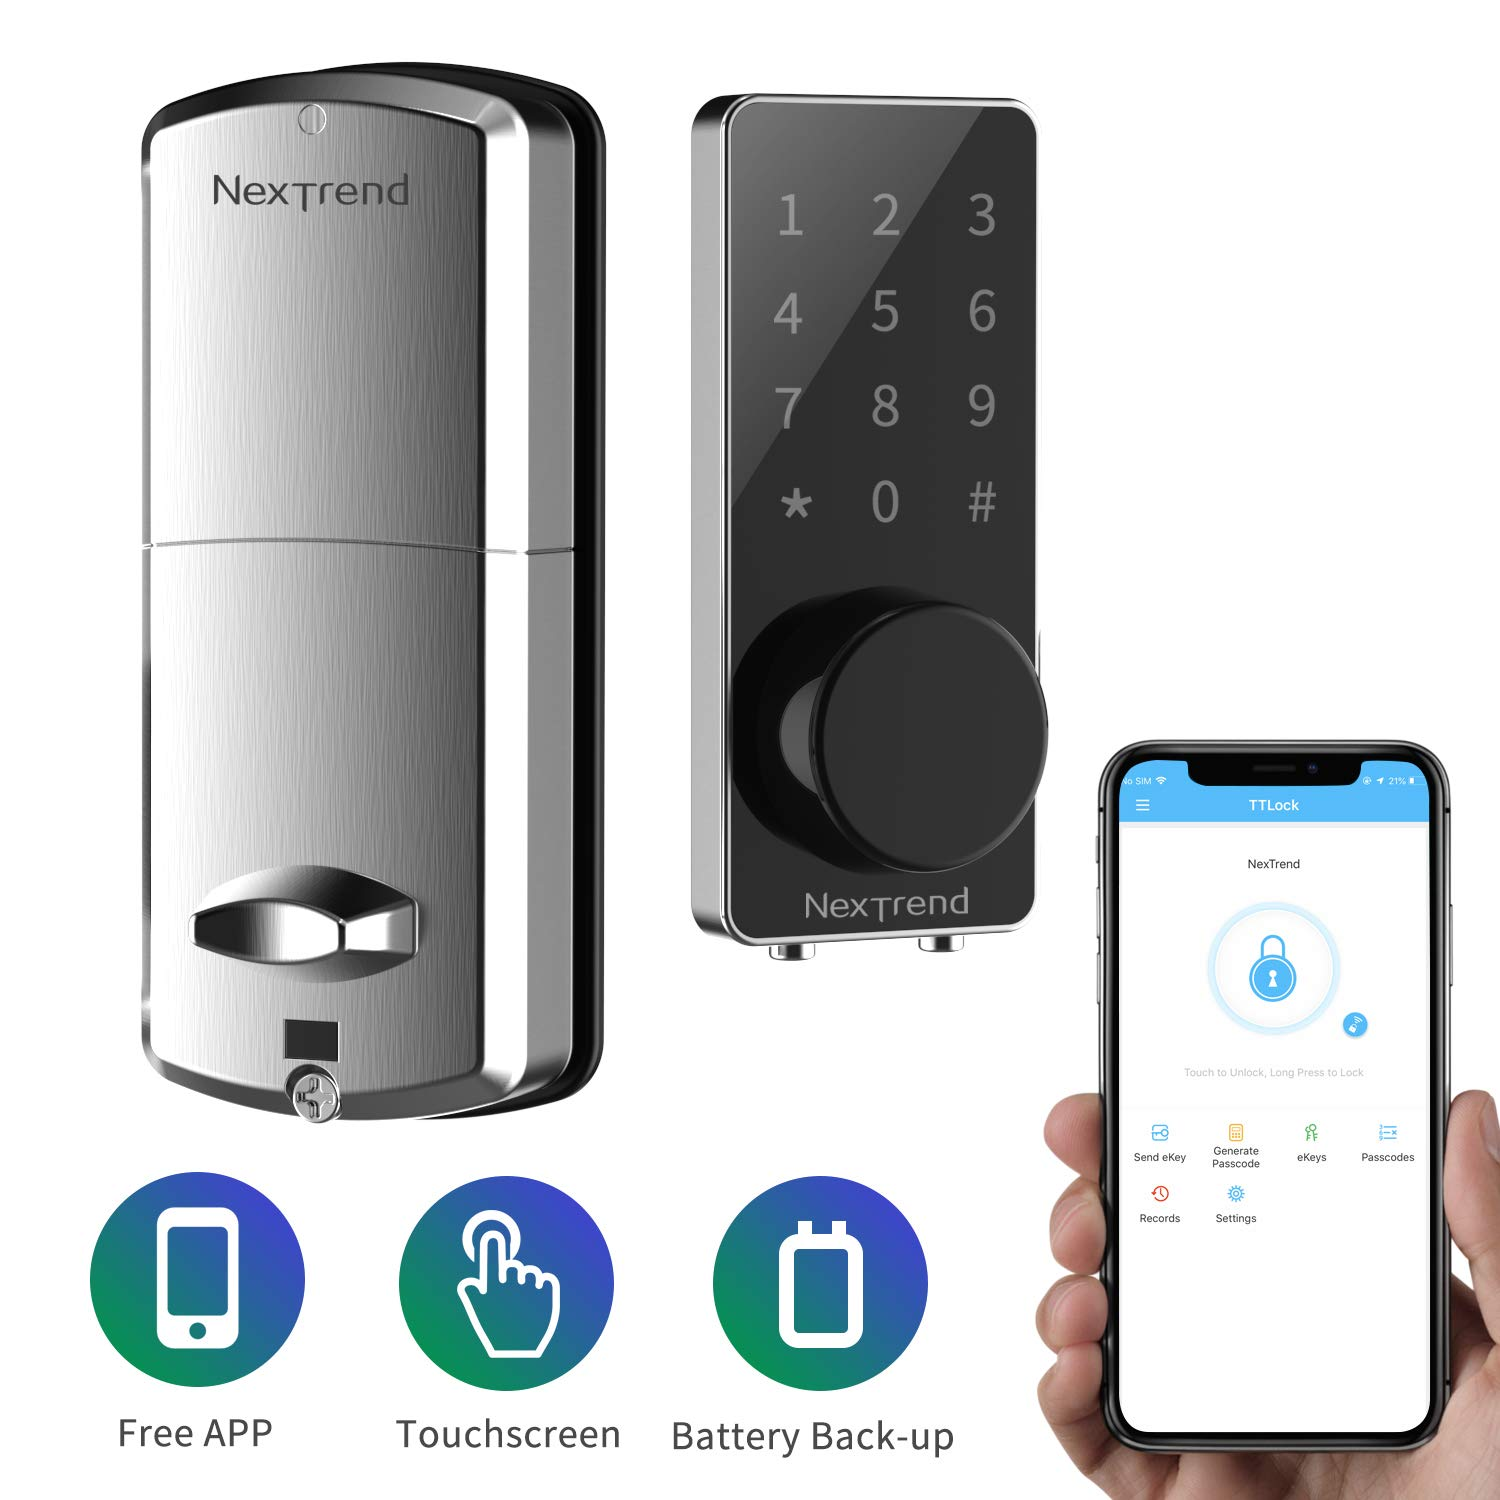 Nextrend Smart Lock Review